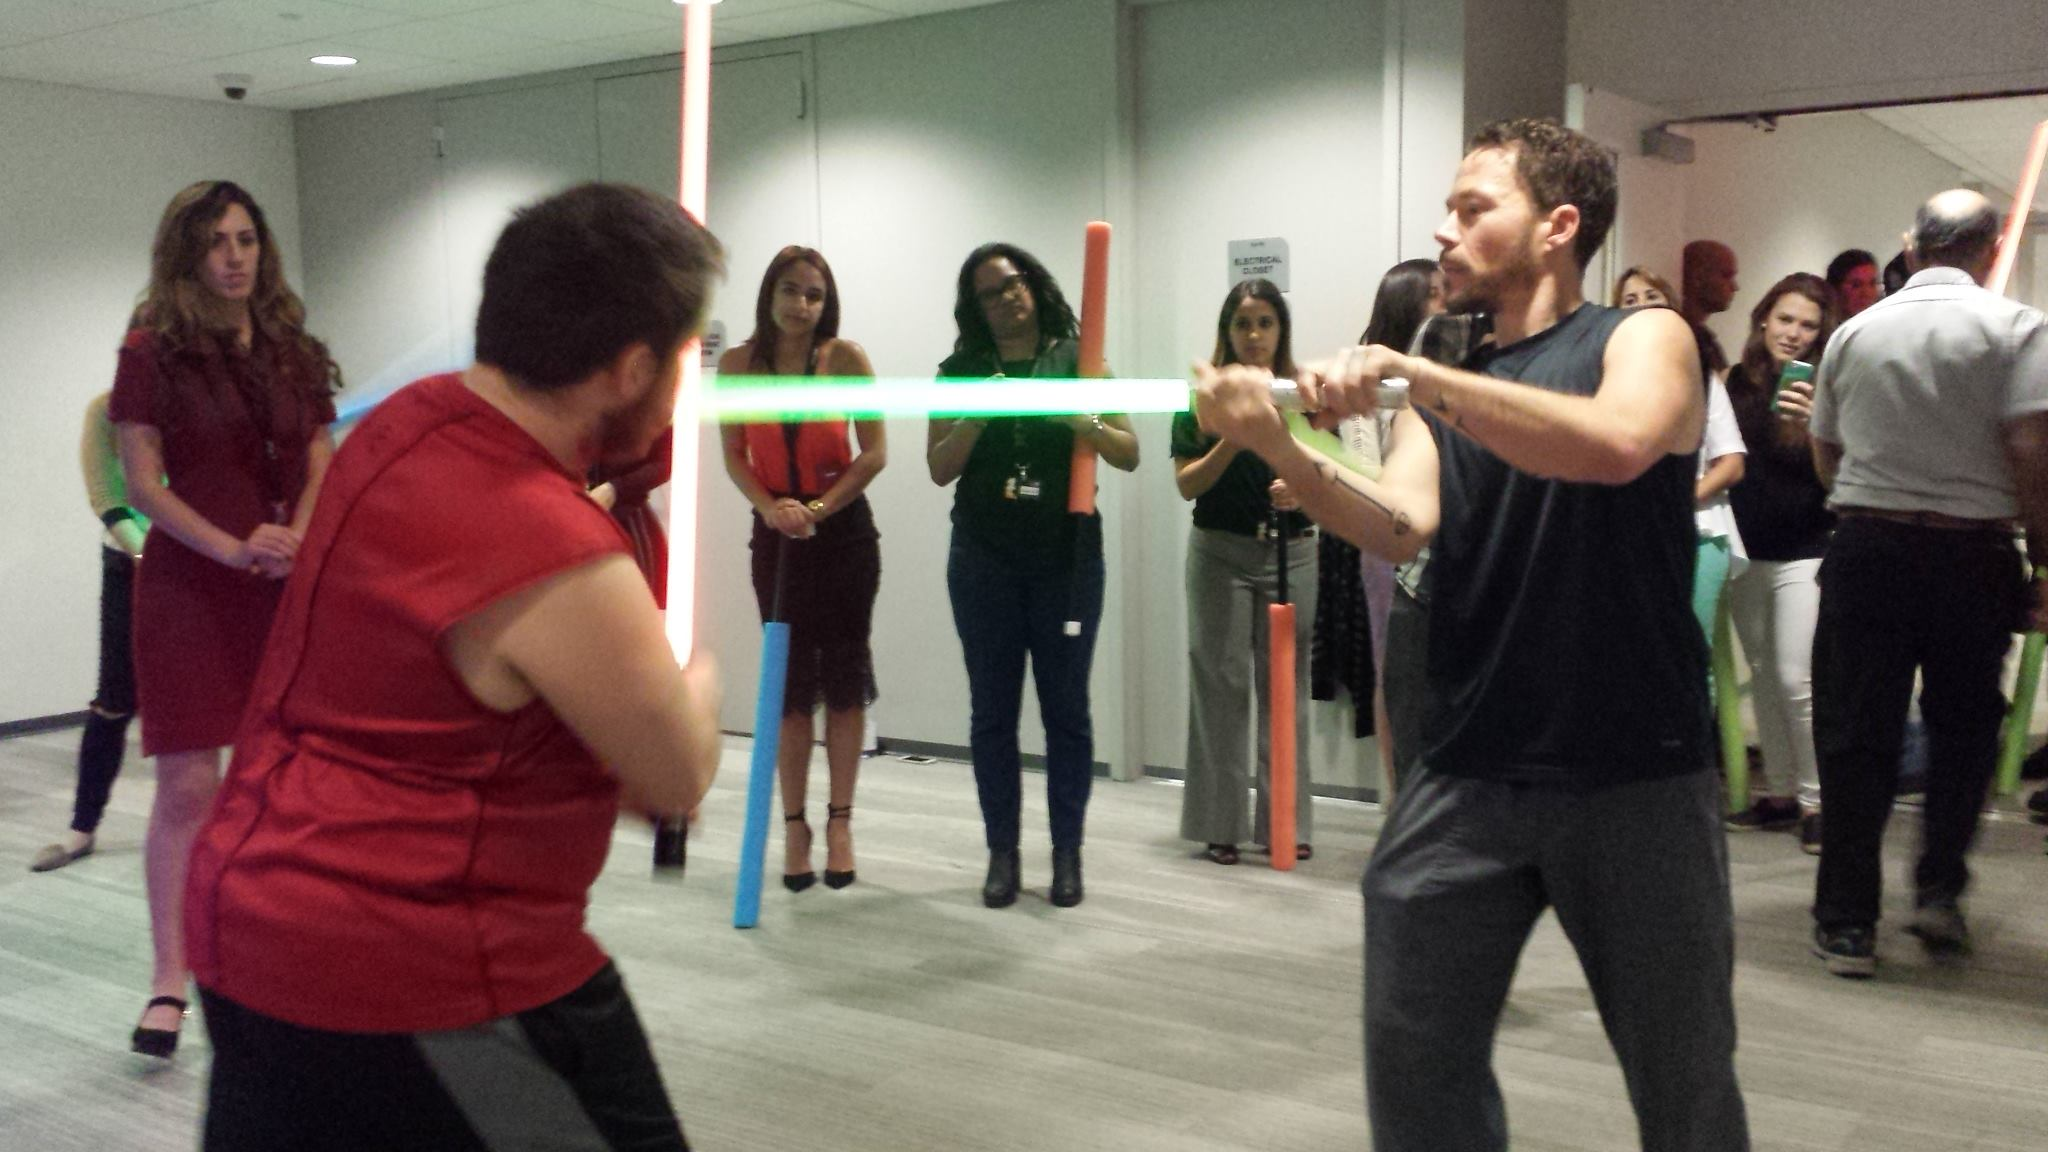 Chicas Poderosas: Empowering Women with Lightsabers